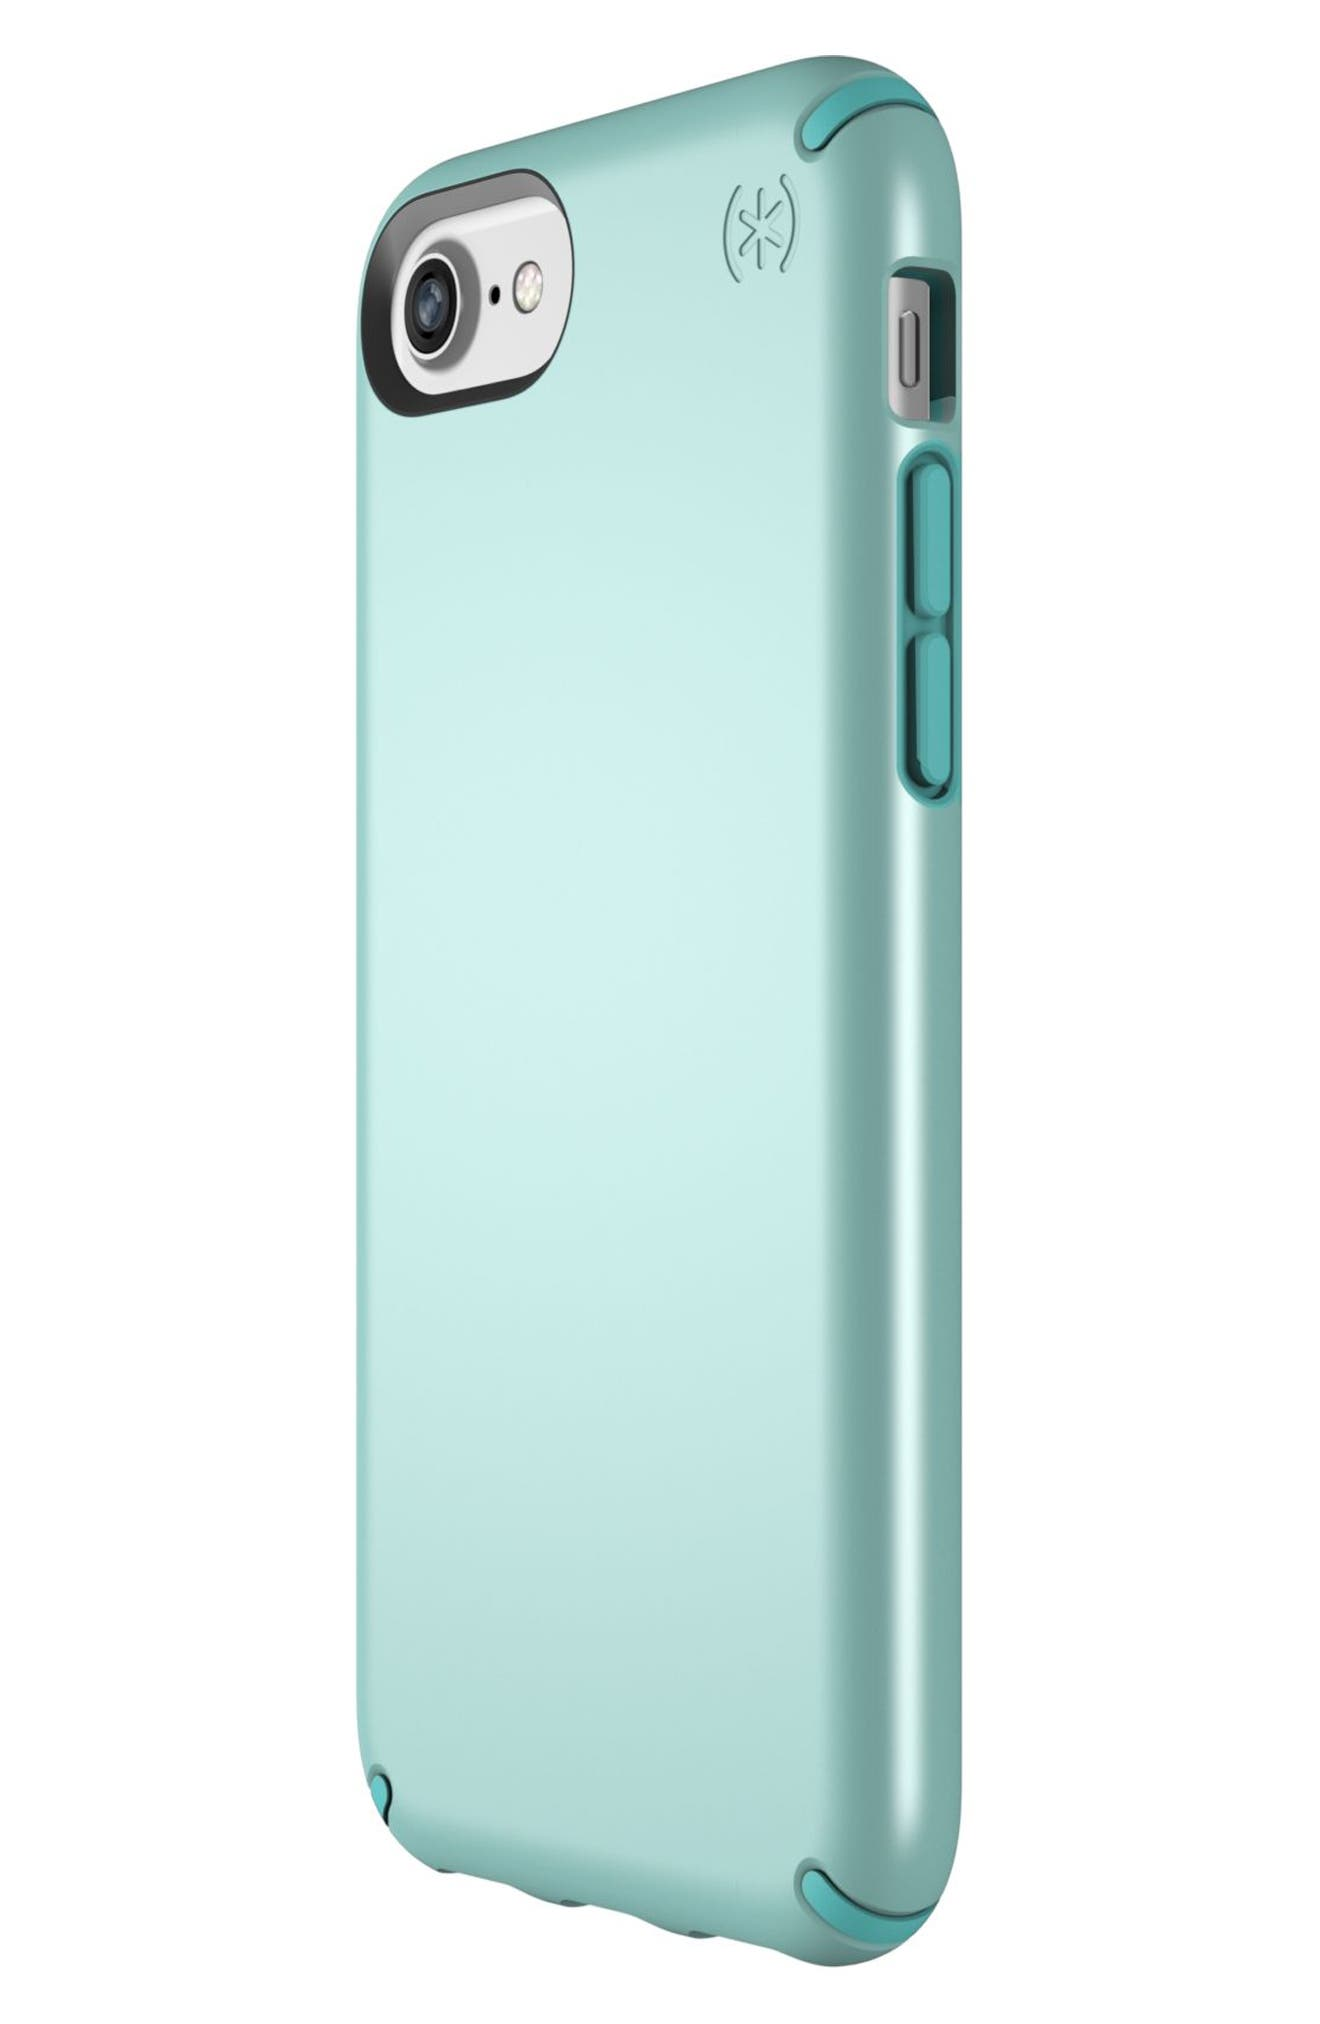 iPhone 6/6s/7/8 Case,                             Alternate thumbnail 4, color,                             Peppermint Green/ Teal